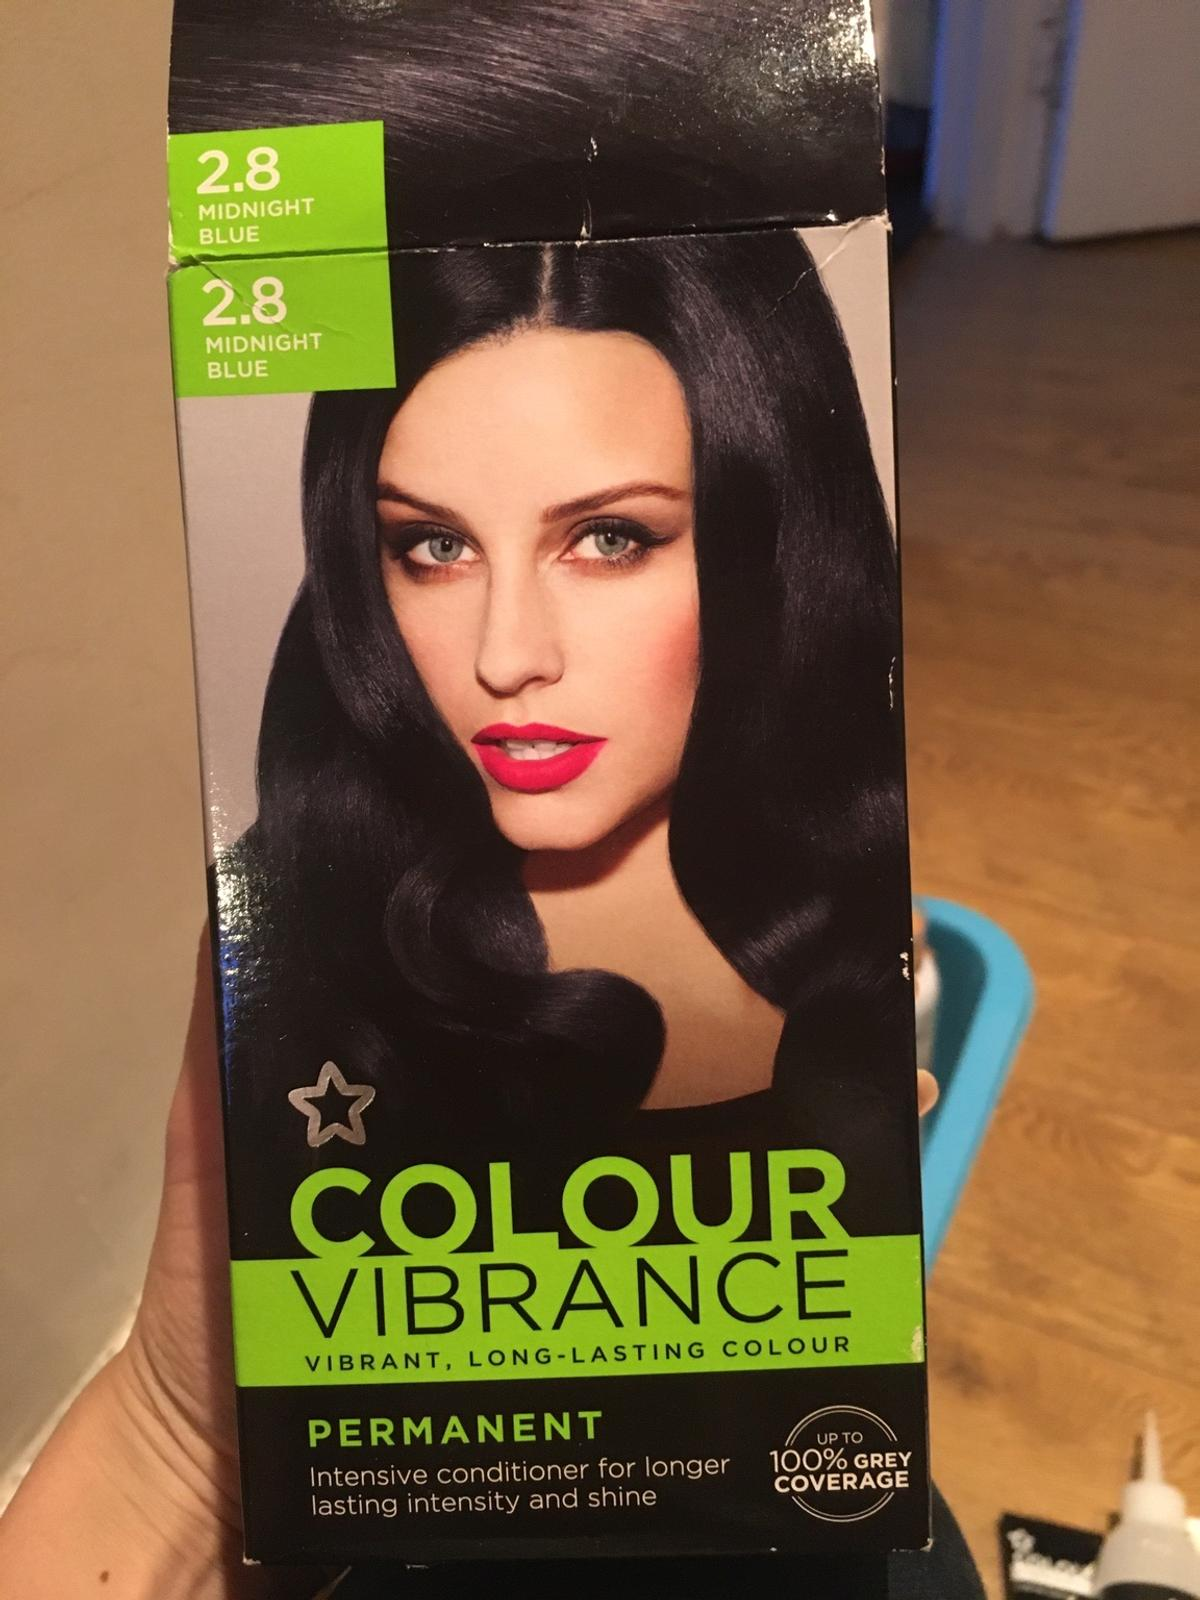 Colour Vibrance Hair Dye Permanent  New! Tube is sealed as seen on picture! Complete pack  Pick up only from SW16  See my other items - house clearance